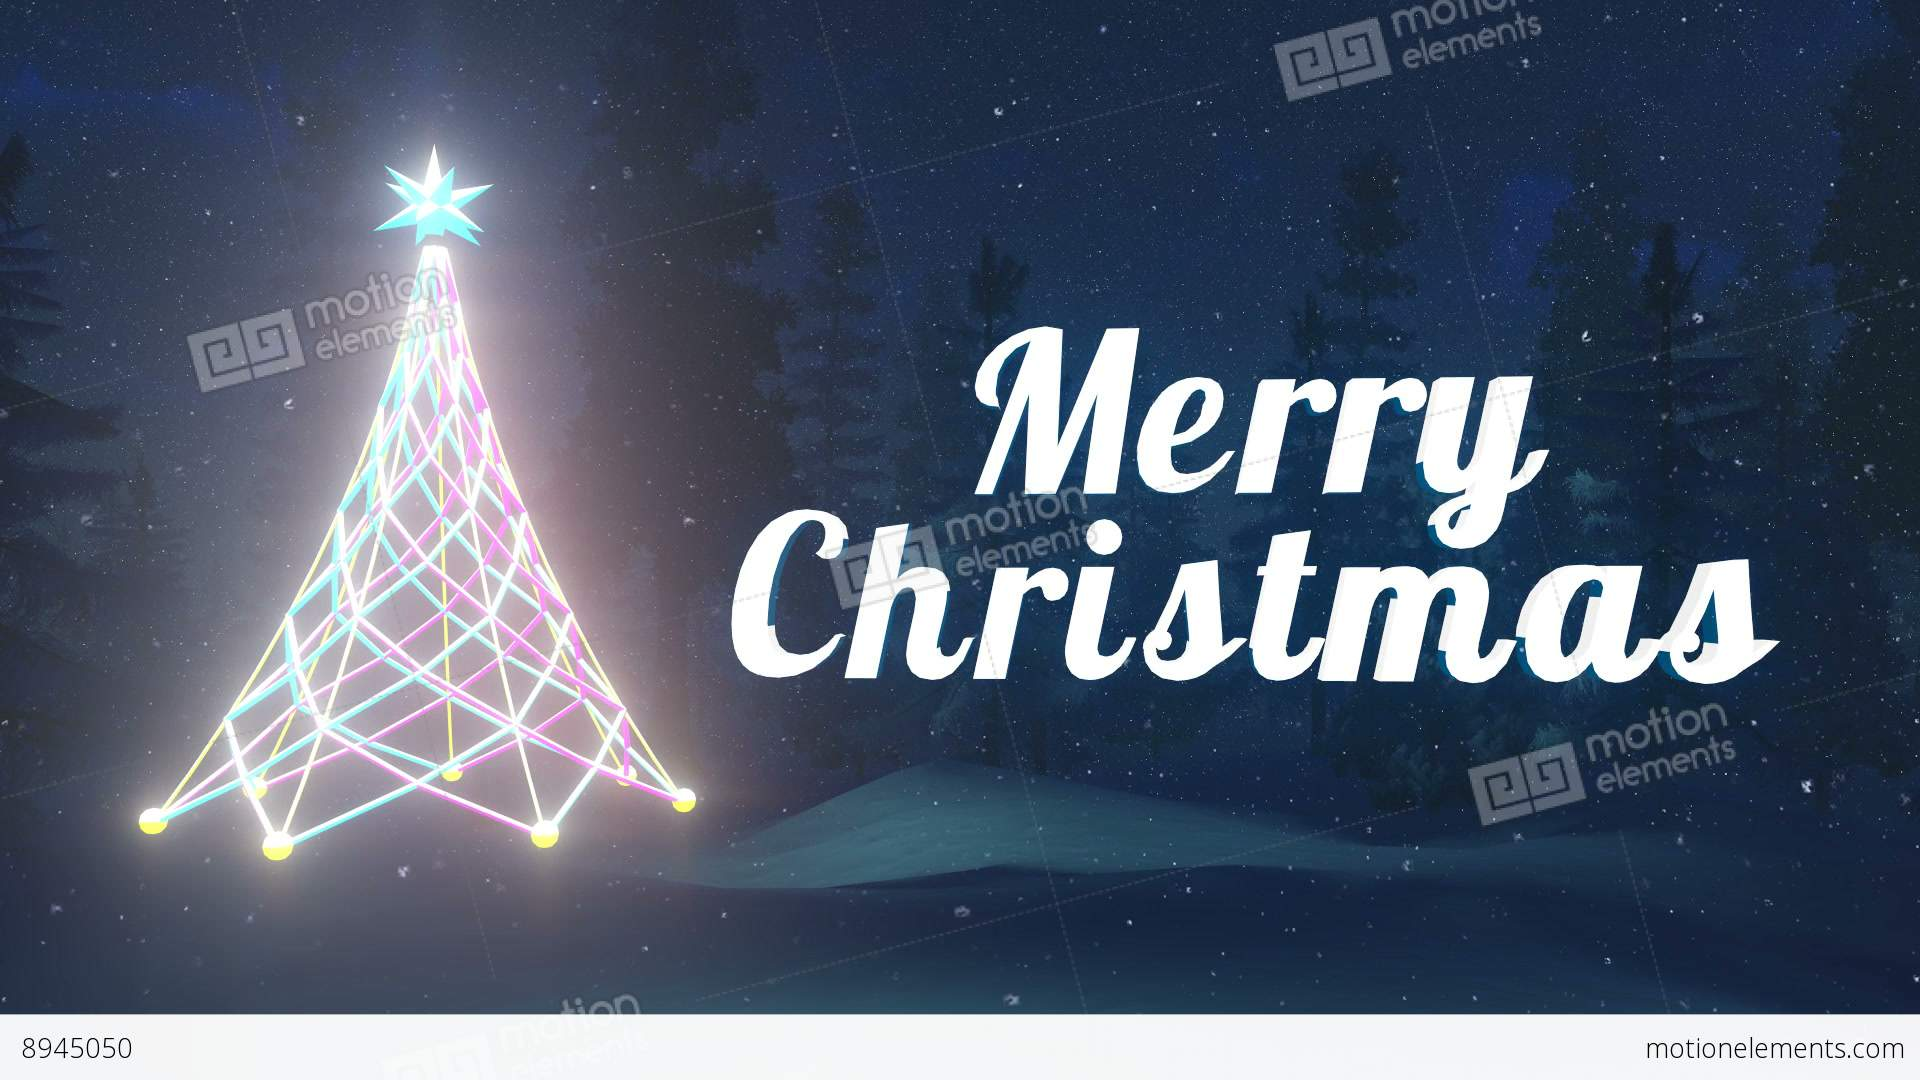 merry christmas animation at snowfall night stock video footage - Merry Christmas Animated Graphics